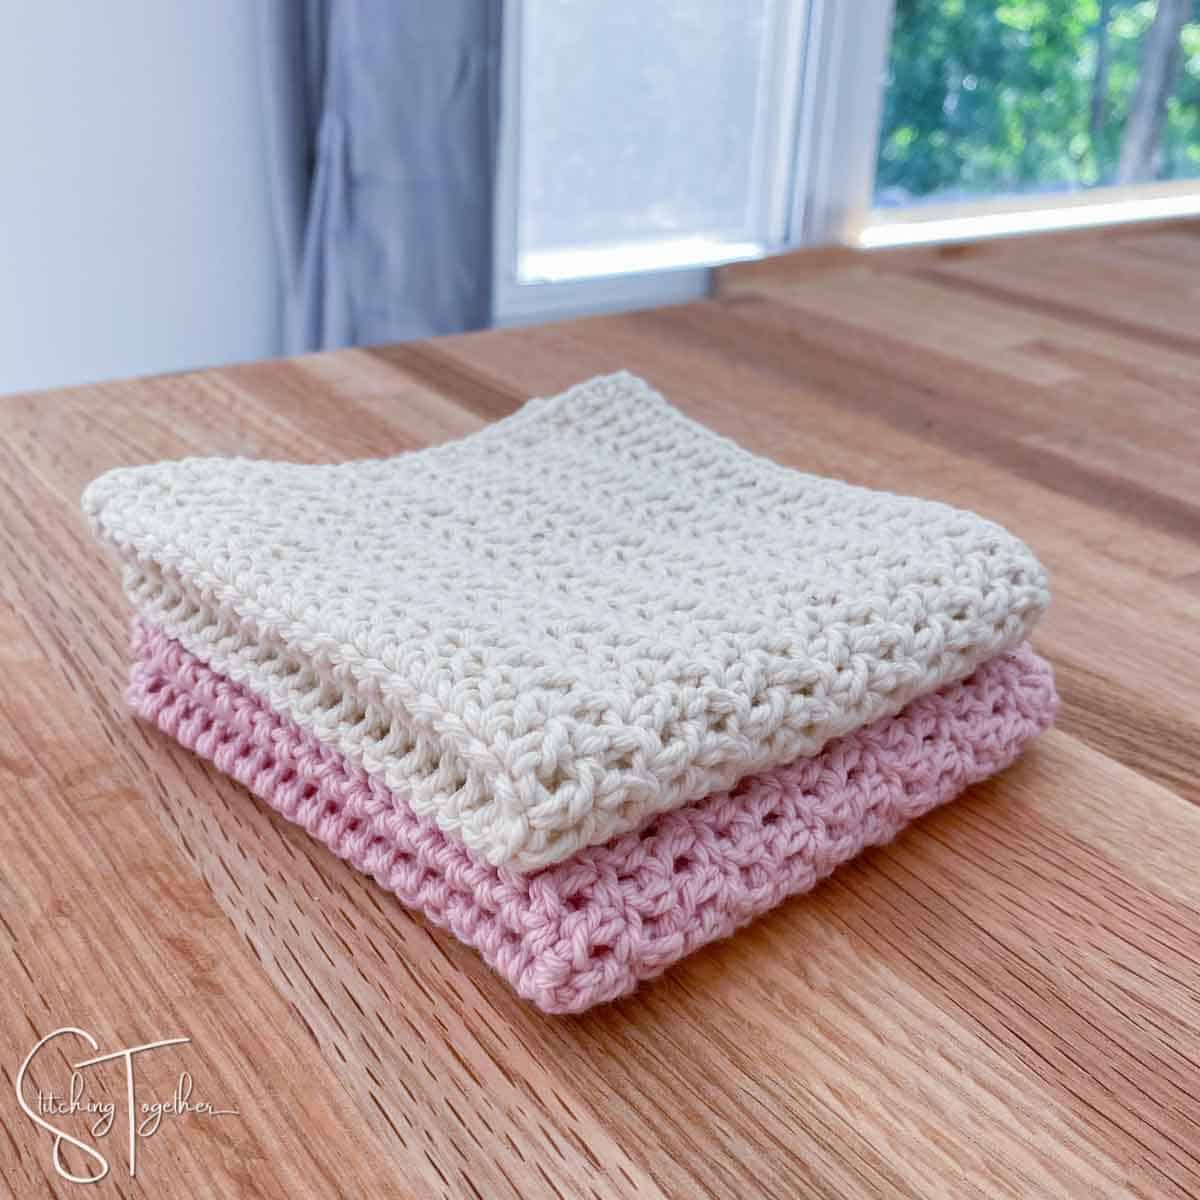 stack of two crochet dishcloths folded on a counter